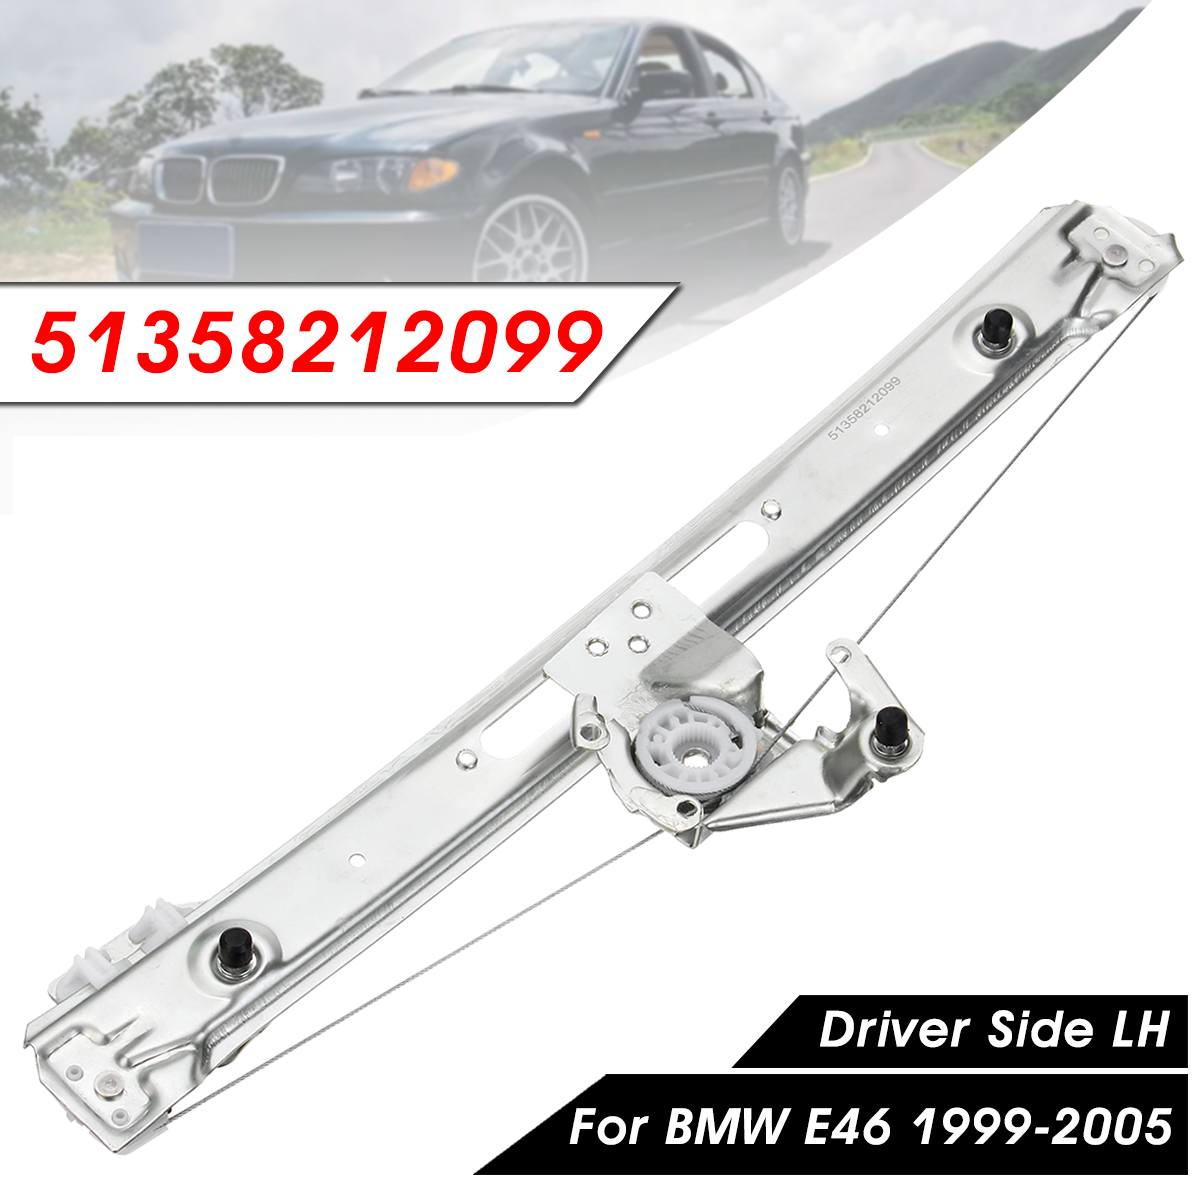 Rear Left Power Window Regulator For BMW E46 3 Series 323i 325i 325Xi 1999 - 2005 Driver Side 51358212099